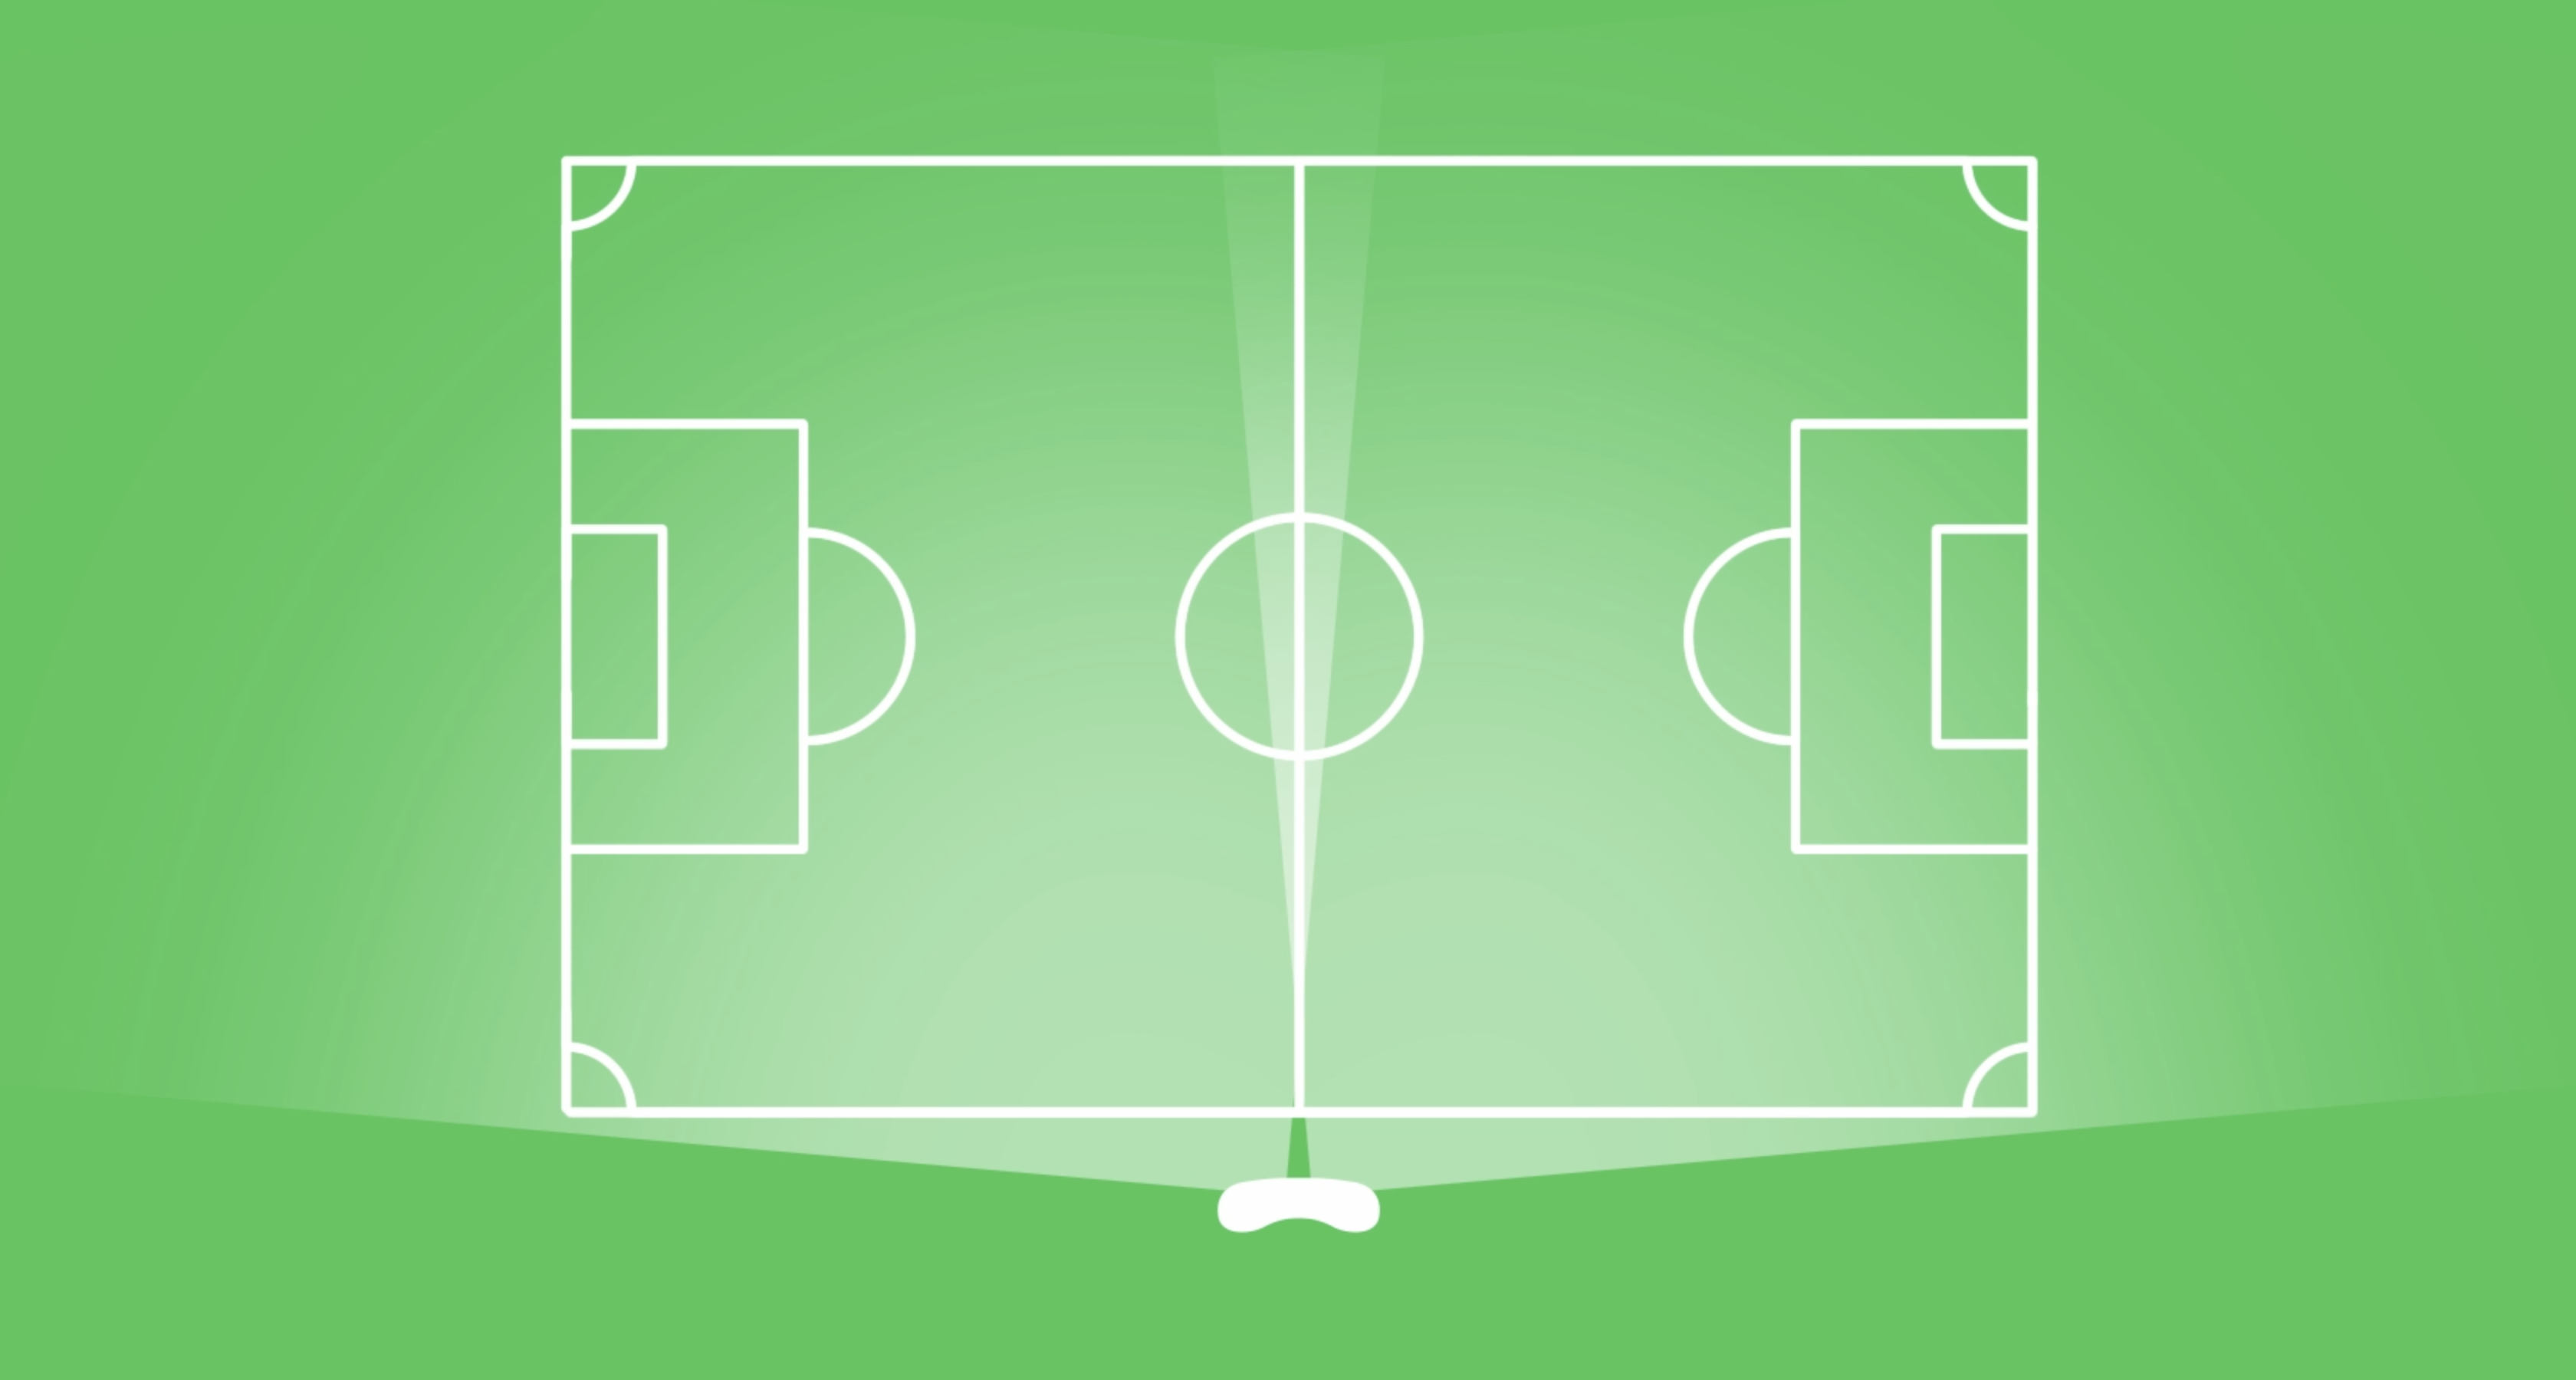 Veo records the whole football pitch when placed on the touch-line